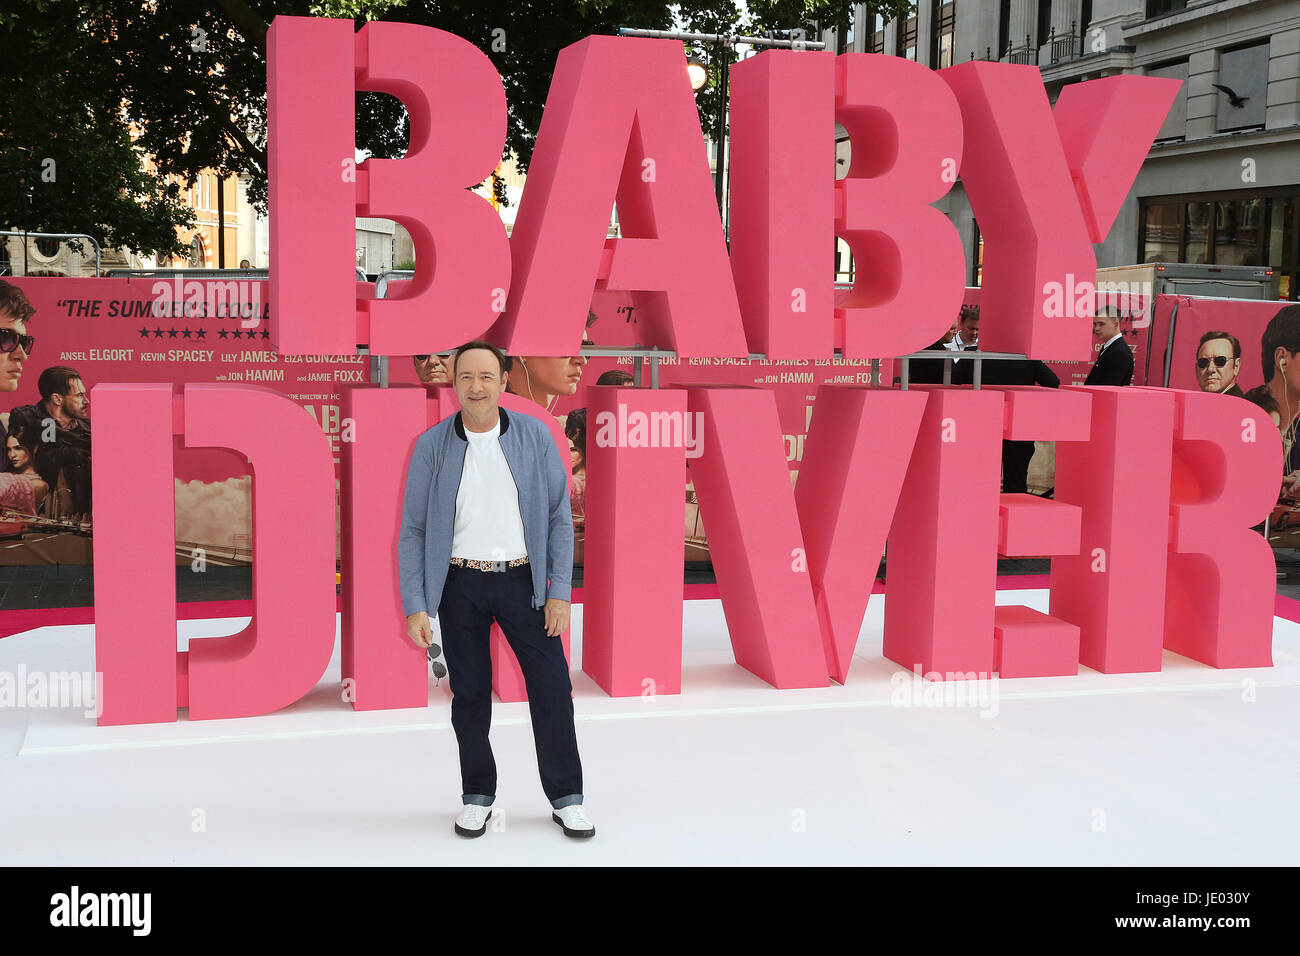 Londres, Royaume-Uni. 21 Juin, 2017. Kevin Spacey, pilote Bébé - European Film Premiere, Leicester Square, Photo Stock